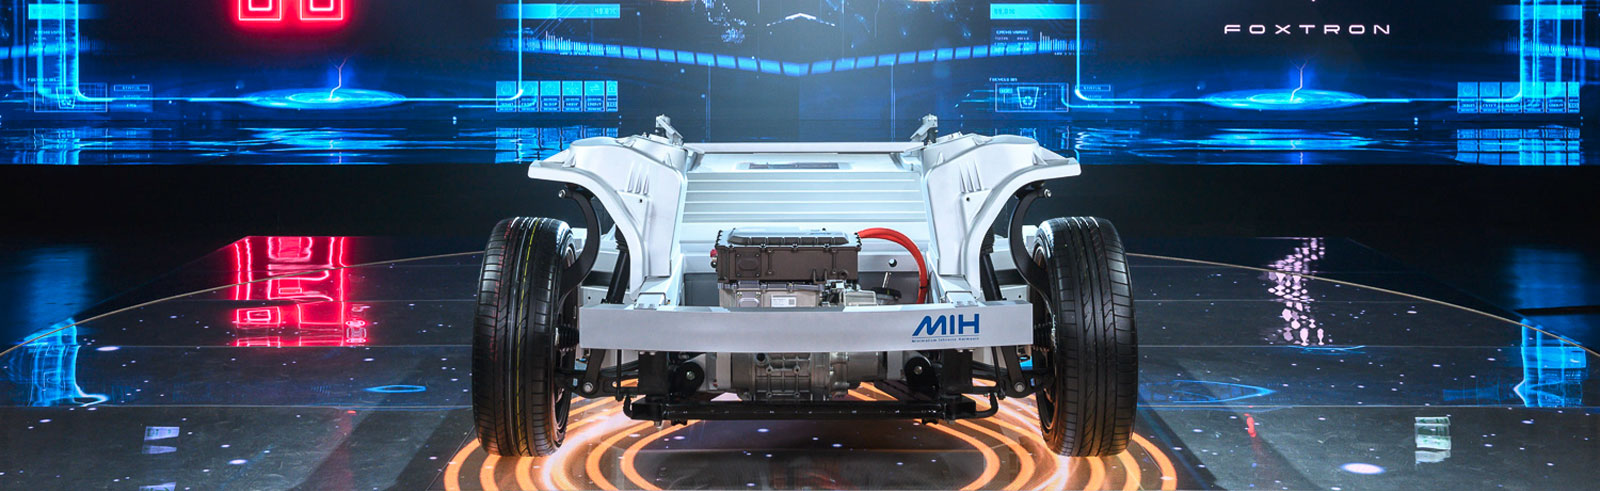 Foxconn introduces its MIH open platform for EVs and plans for a solid-state battery launch by 2024